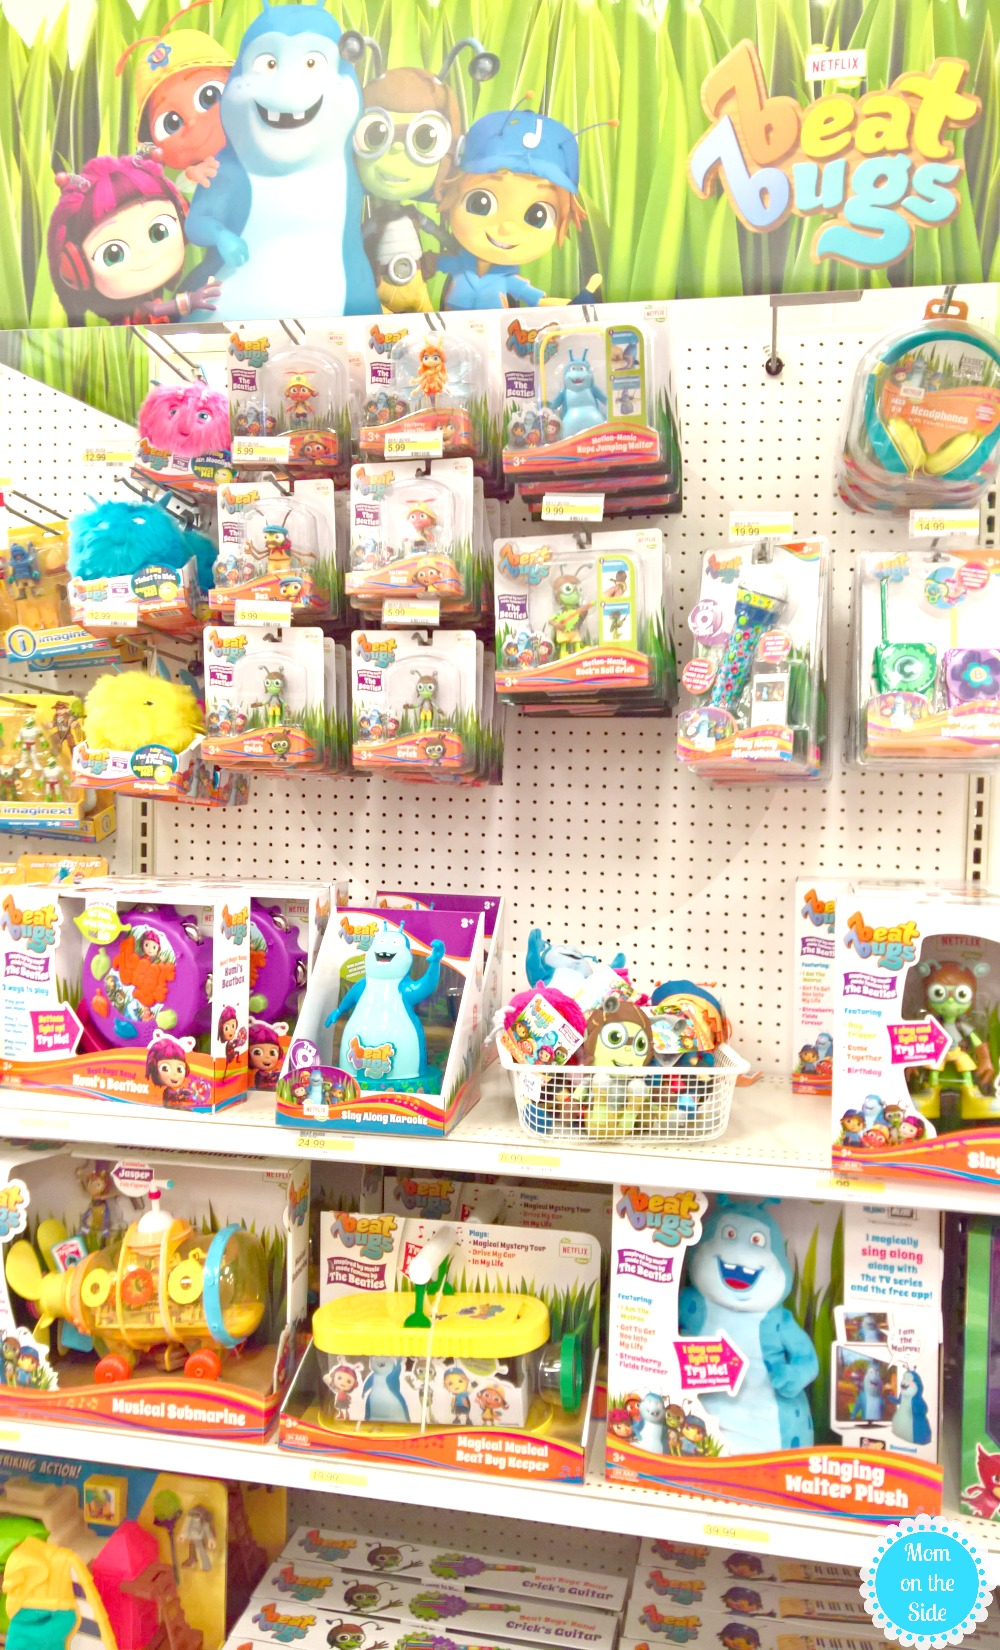 Ultimate Guide to Beat Bugs Toys at Target